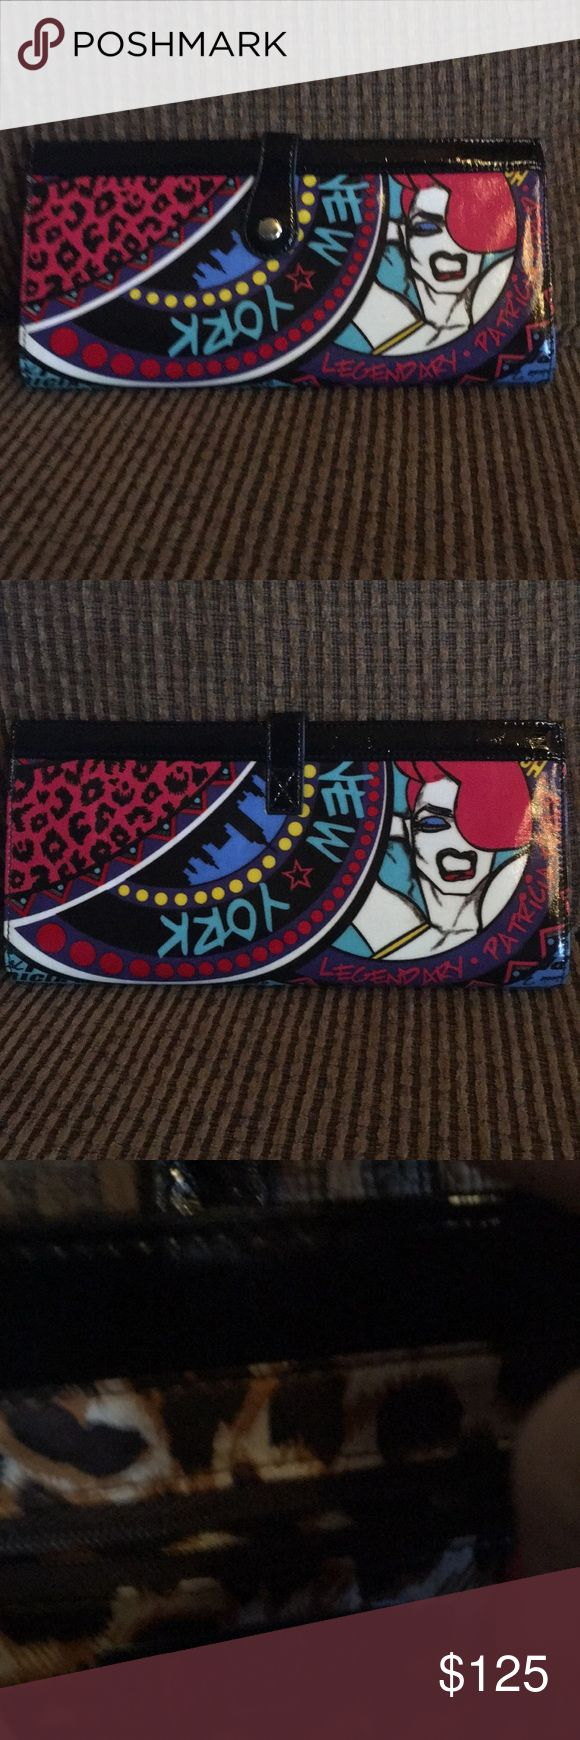 Rare Patricia Field Magazine clutch ! Excel cond Rare Patricia Fields magazine clutch excellent condition made famous by sex and the city  she was designer. Has one zip closure inside. Carried once. Patricia Field Bags Clutches & Wristlets